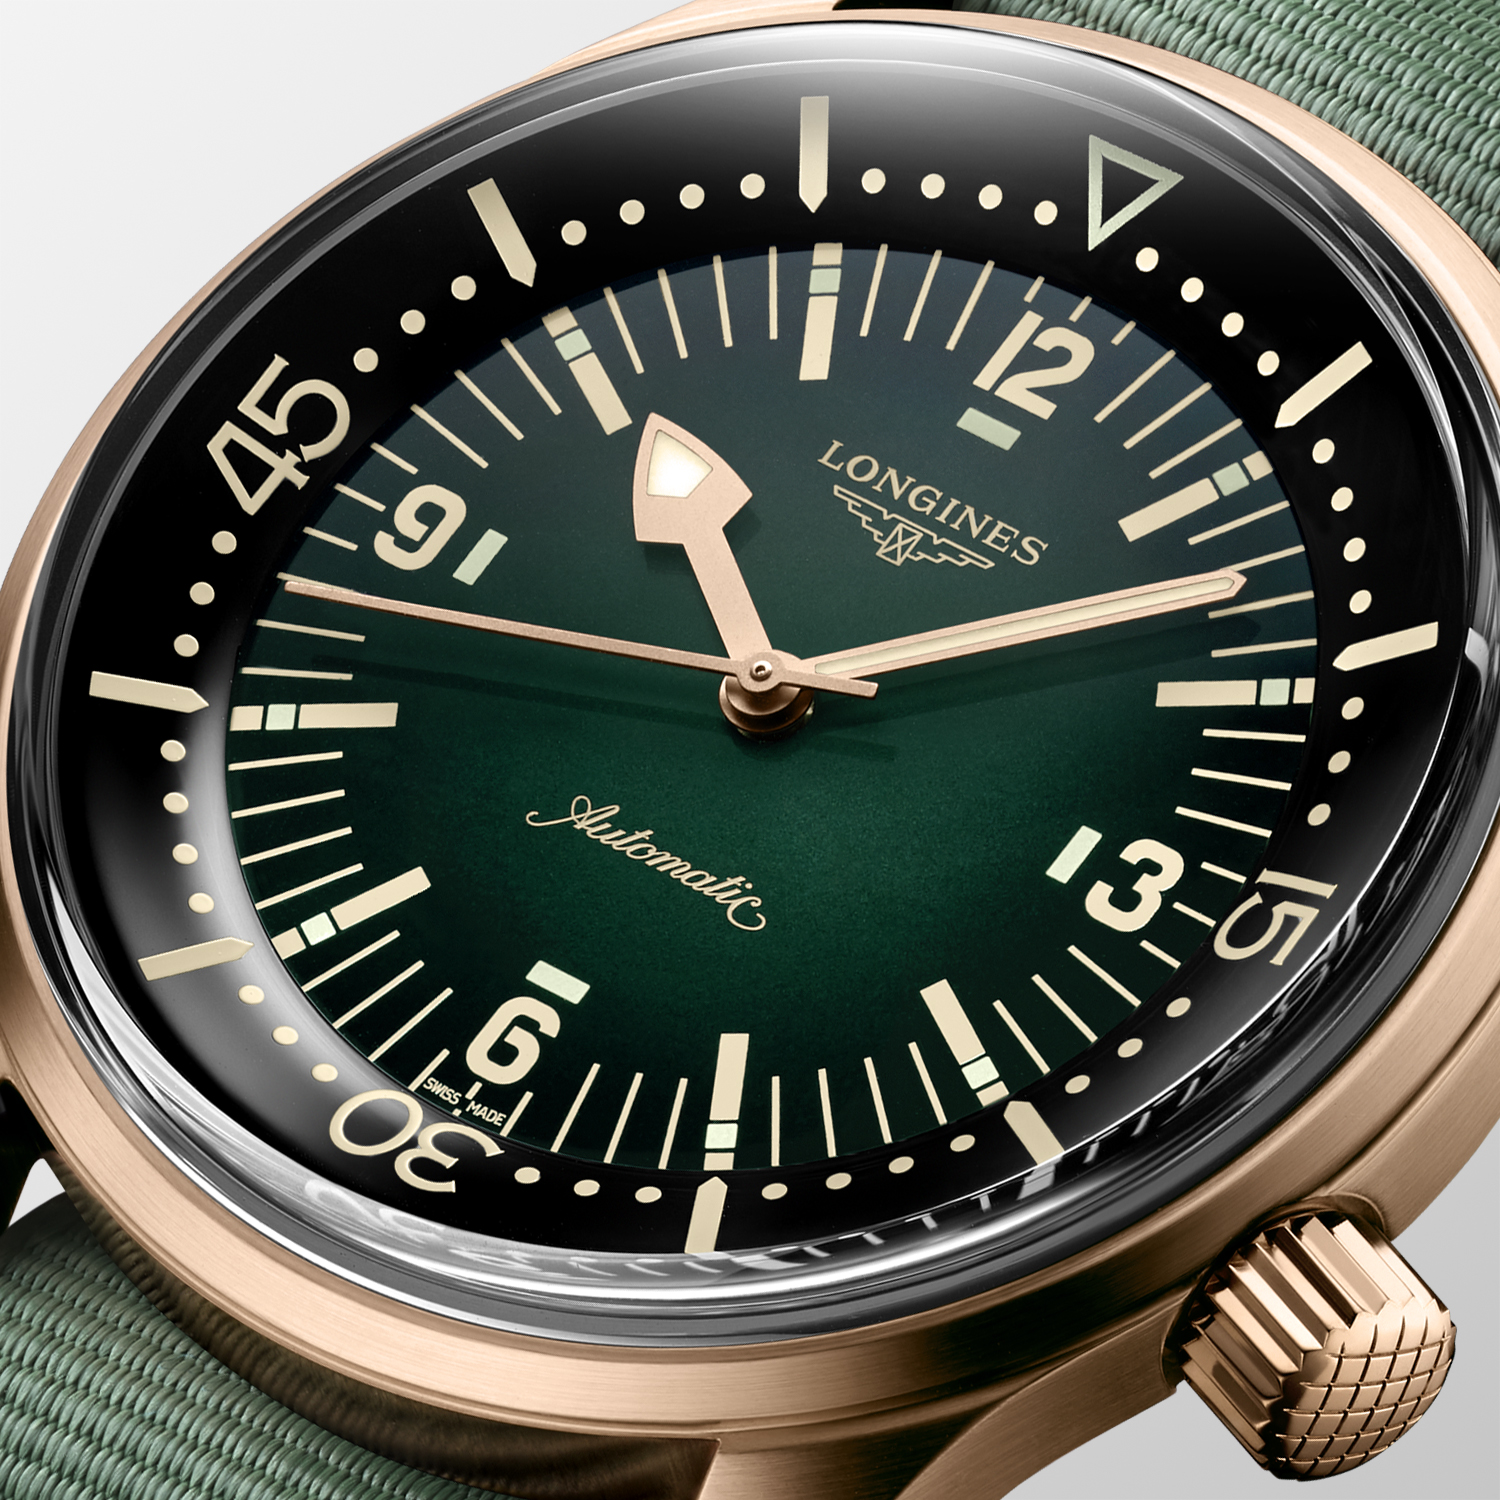 The Longines Legend Diver Watch Bronze L3.774.1.50.2detalle esfera nato